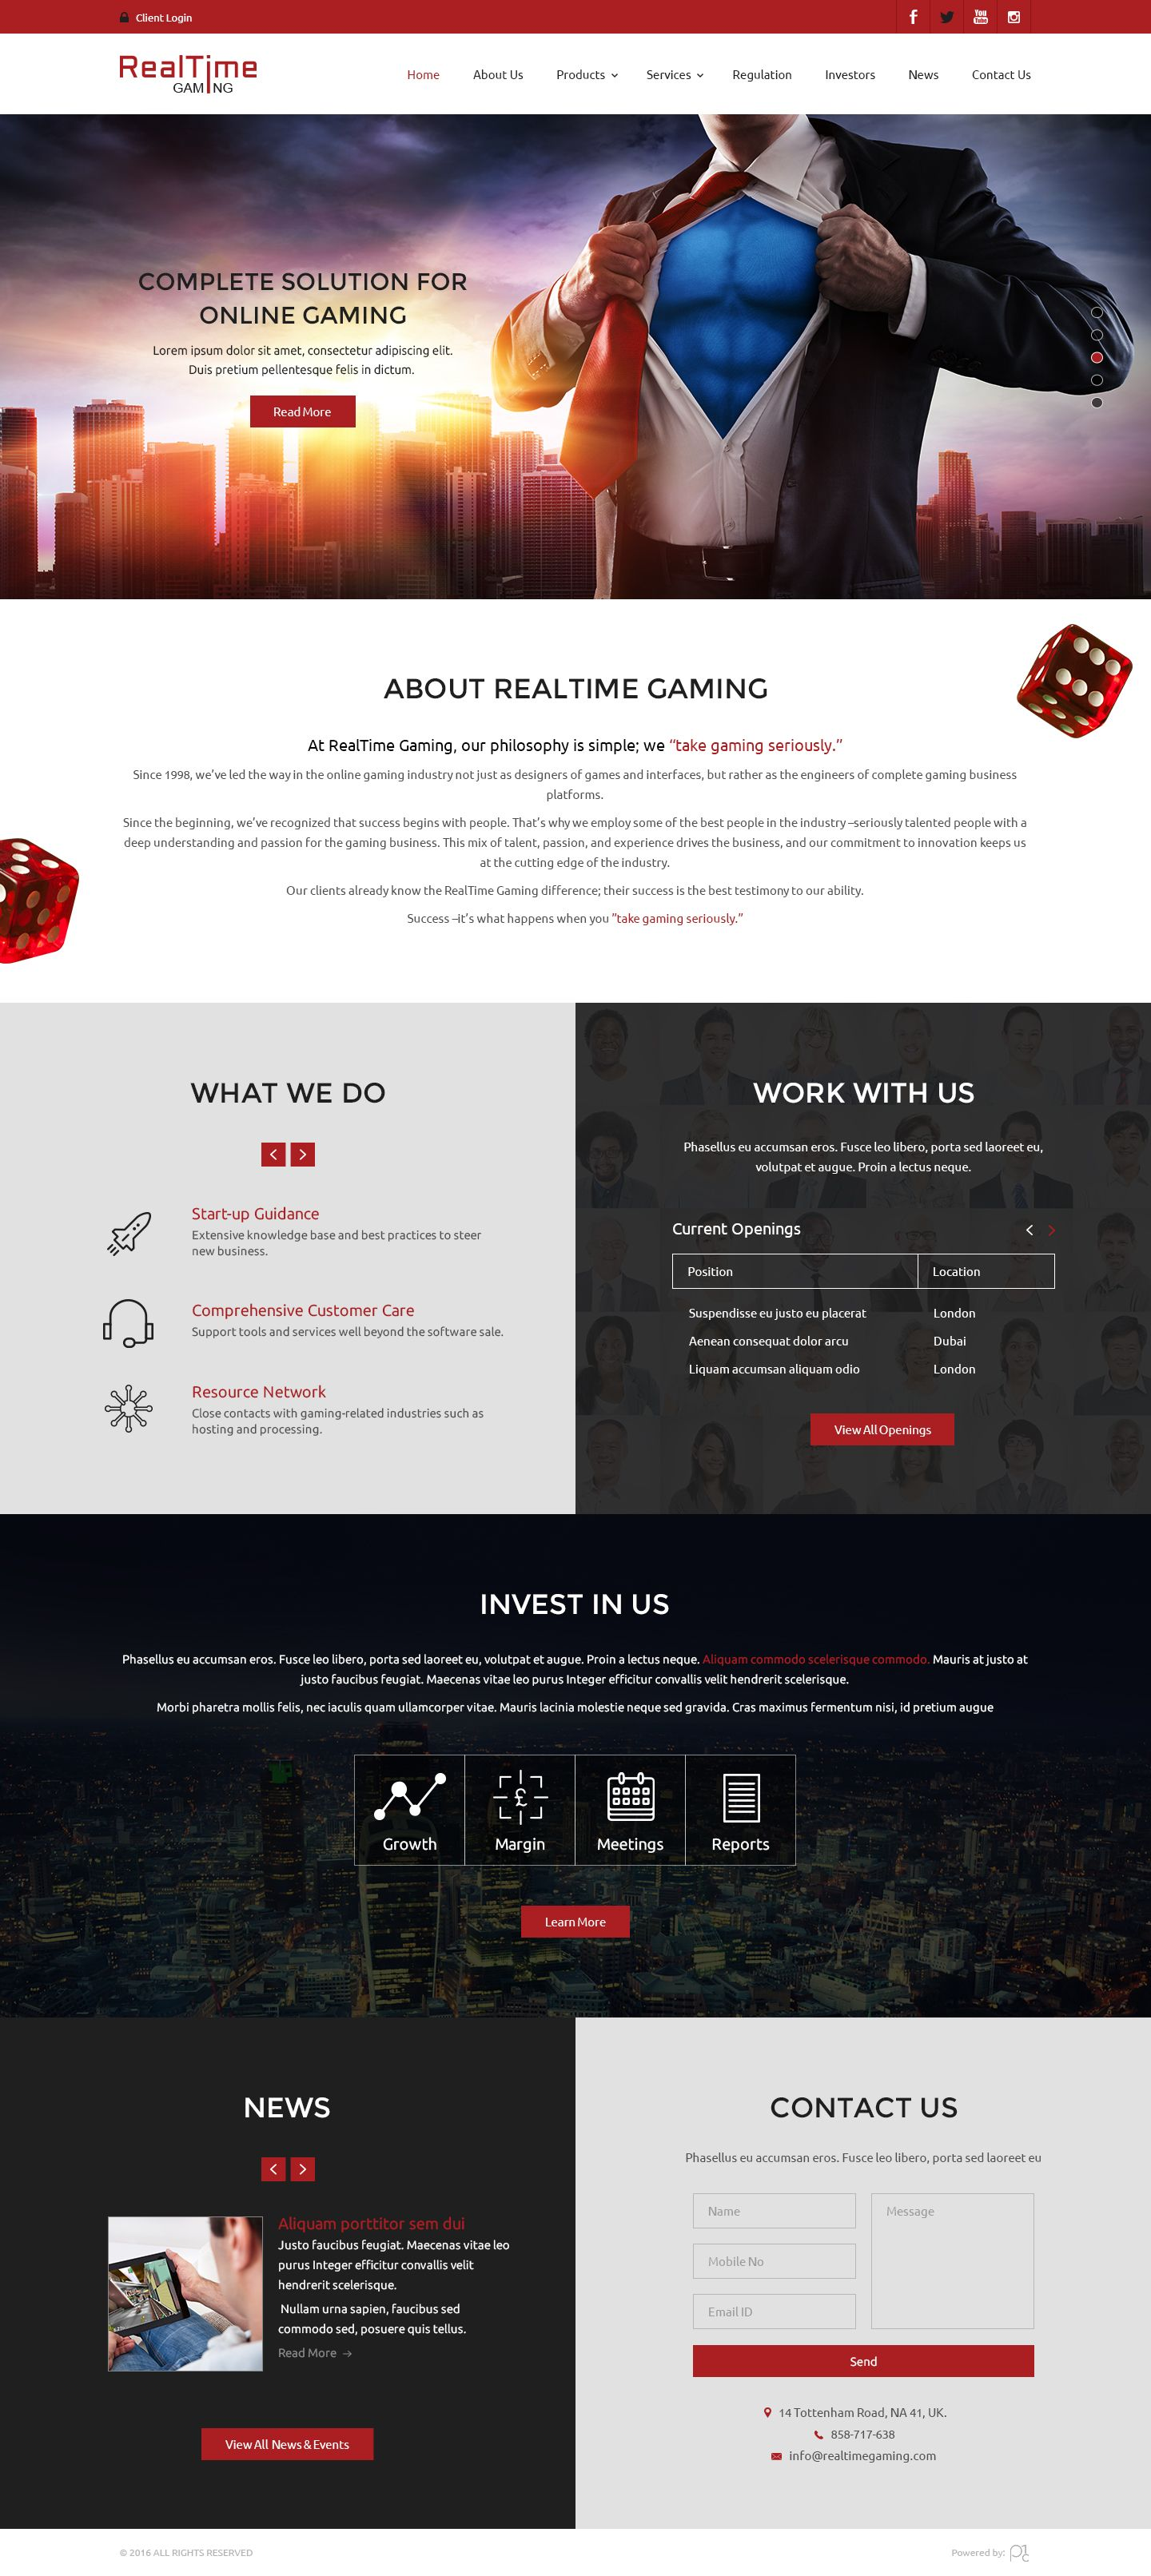 Real Time Gaming Website - Homepage Design   Website Design ... Homepage Website Design on internet website design, information website design, dating website design, technology website design, library website design, custom website design, health website design, author website design, staff website design, gaming website design, pages website design, links website design, flash website design, press website design, country website design, blog website design, google website design, menu website design, community website design, services website design,